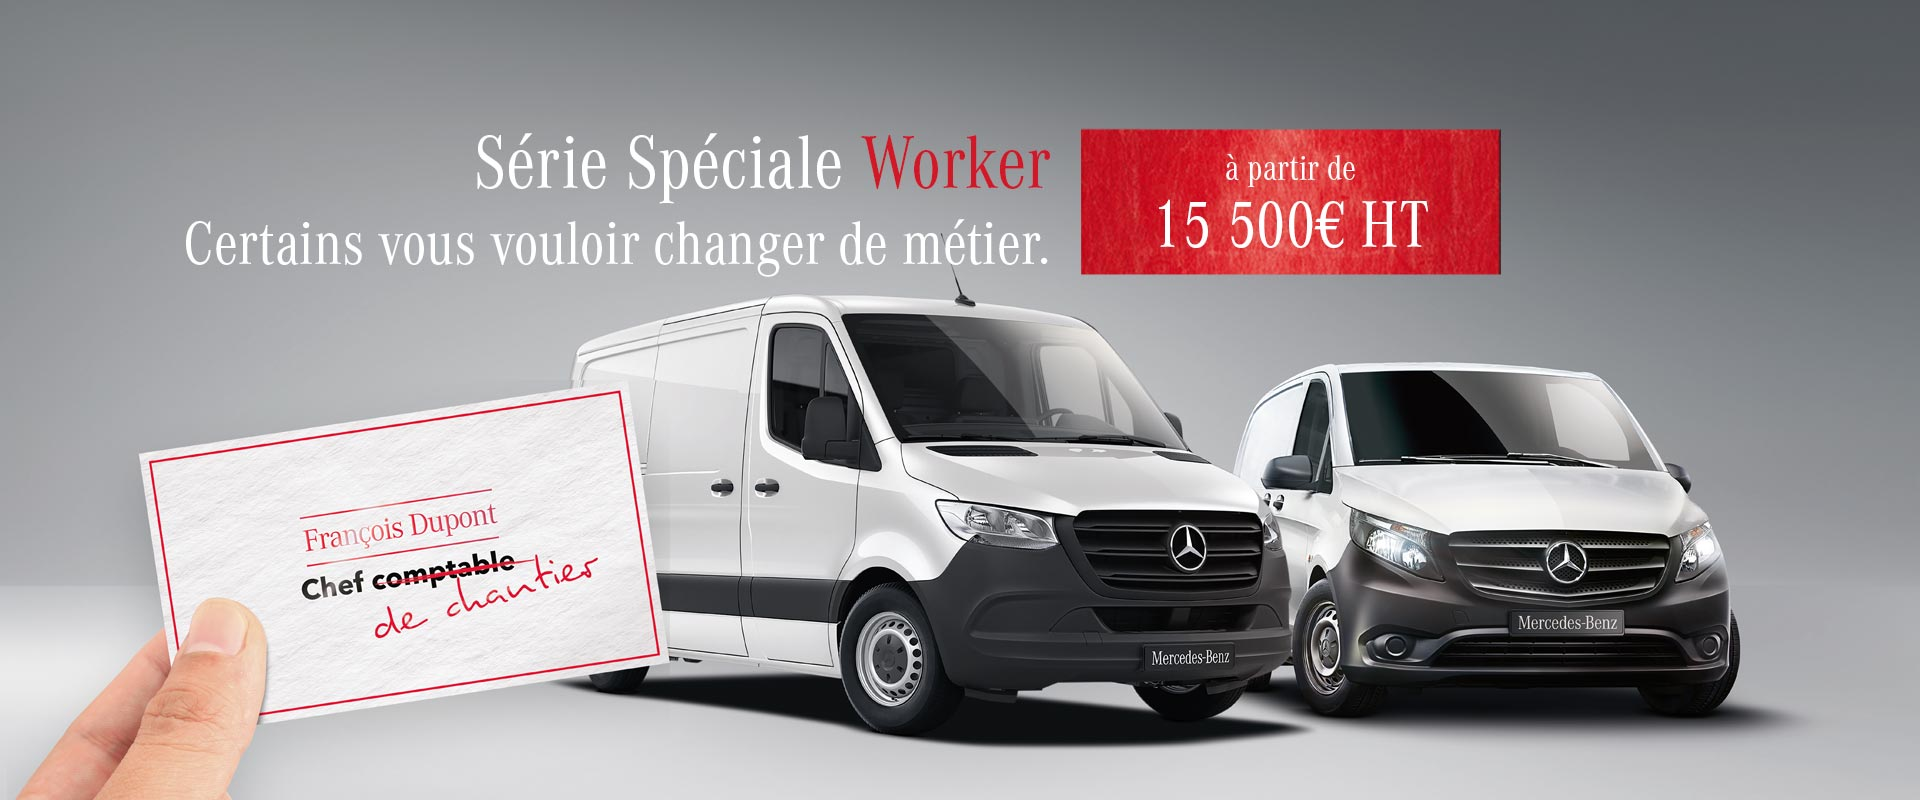 Mercedes Benz Utilitaires Mulhouse Occasion Et Neuf Loa